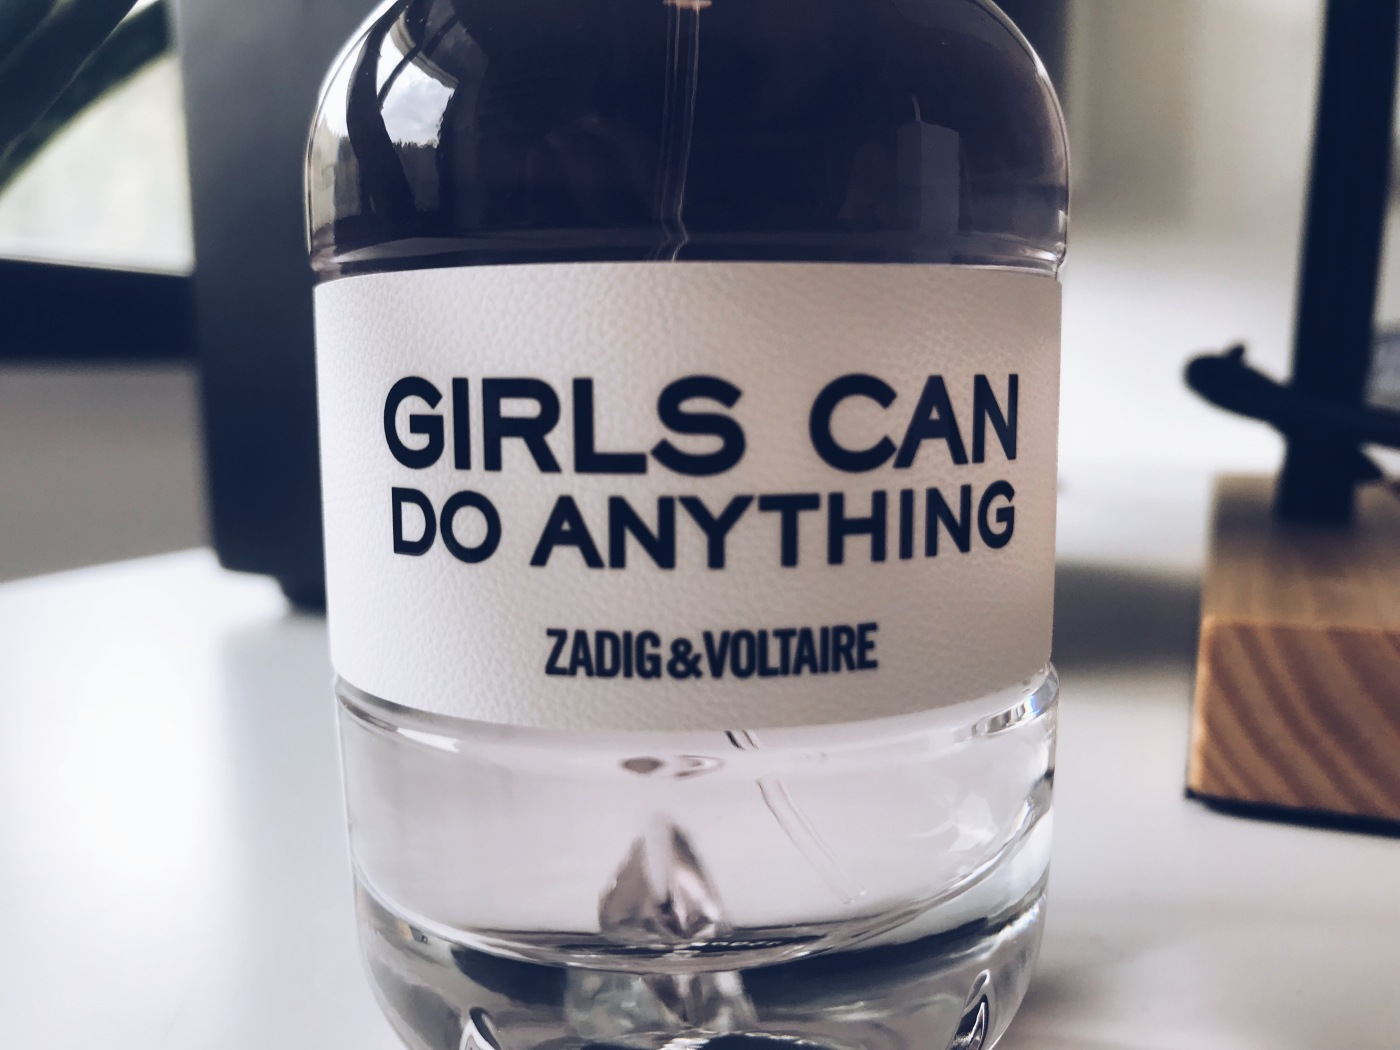 girls-can-do-anything-zadig&voltaire-perfume